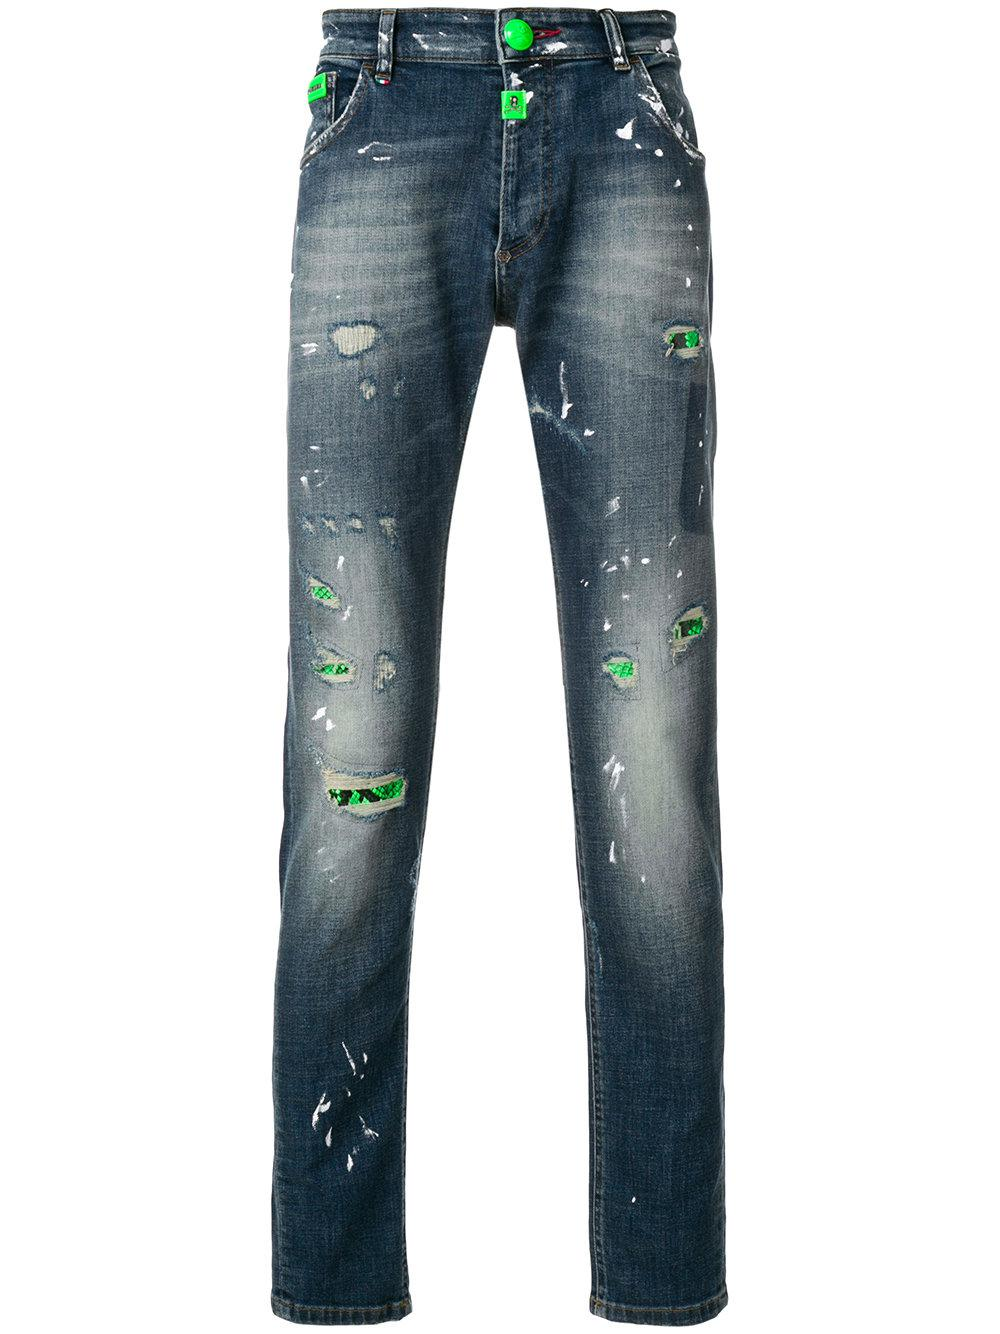 The Cheapest Cheap Price Fluo Python jeans - Blue Philipp Plein Buy Cheap Official Websites Cheap Online Free Shipping Factory Outlet RKf1T1